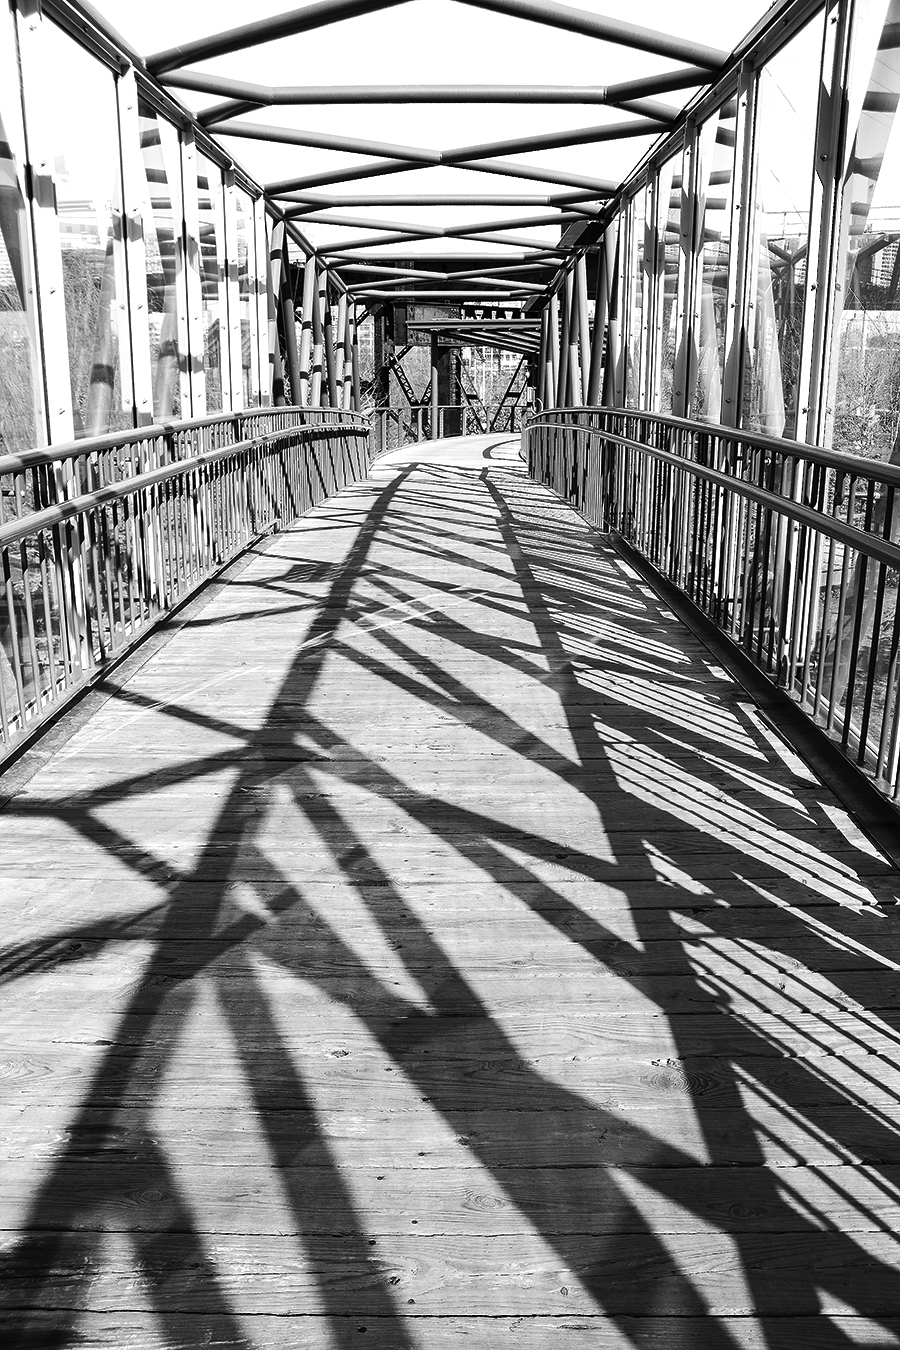 Janelle_Tong_Photography_Tony_Ward_Studio_Individual_Project_UPenn_Penn_Park_Bridges_Perspective_Crossing_Shadows_Black_and_White